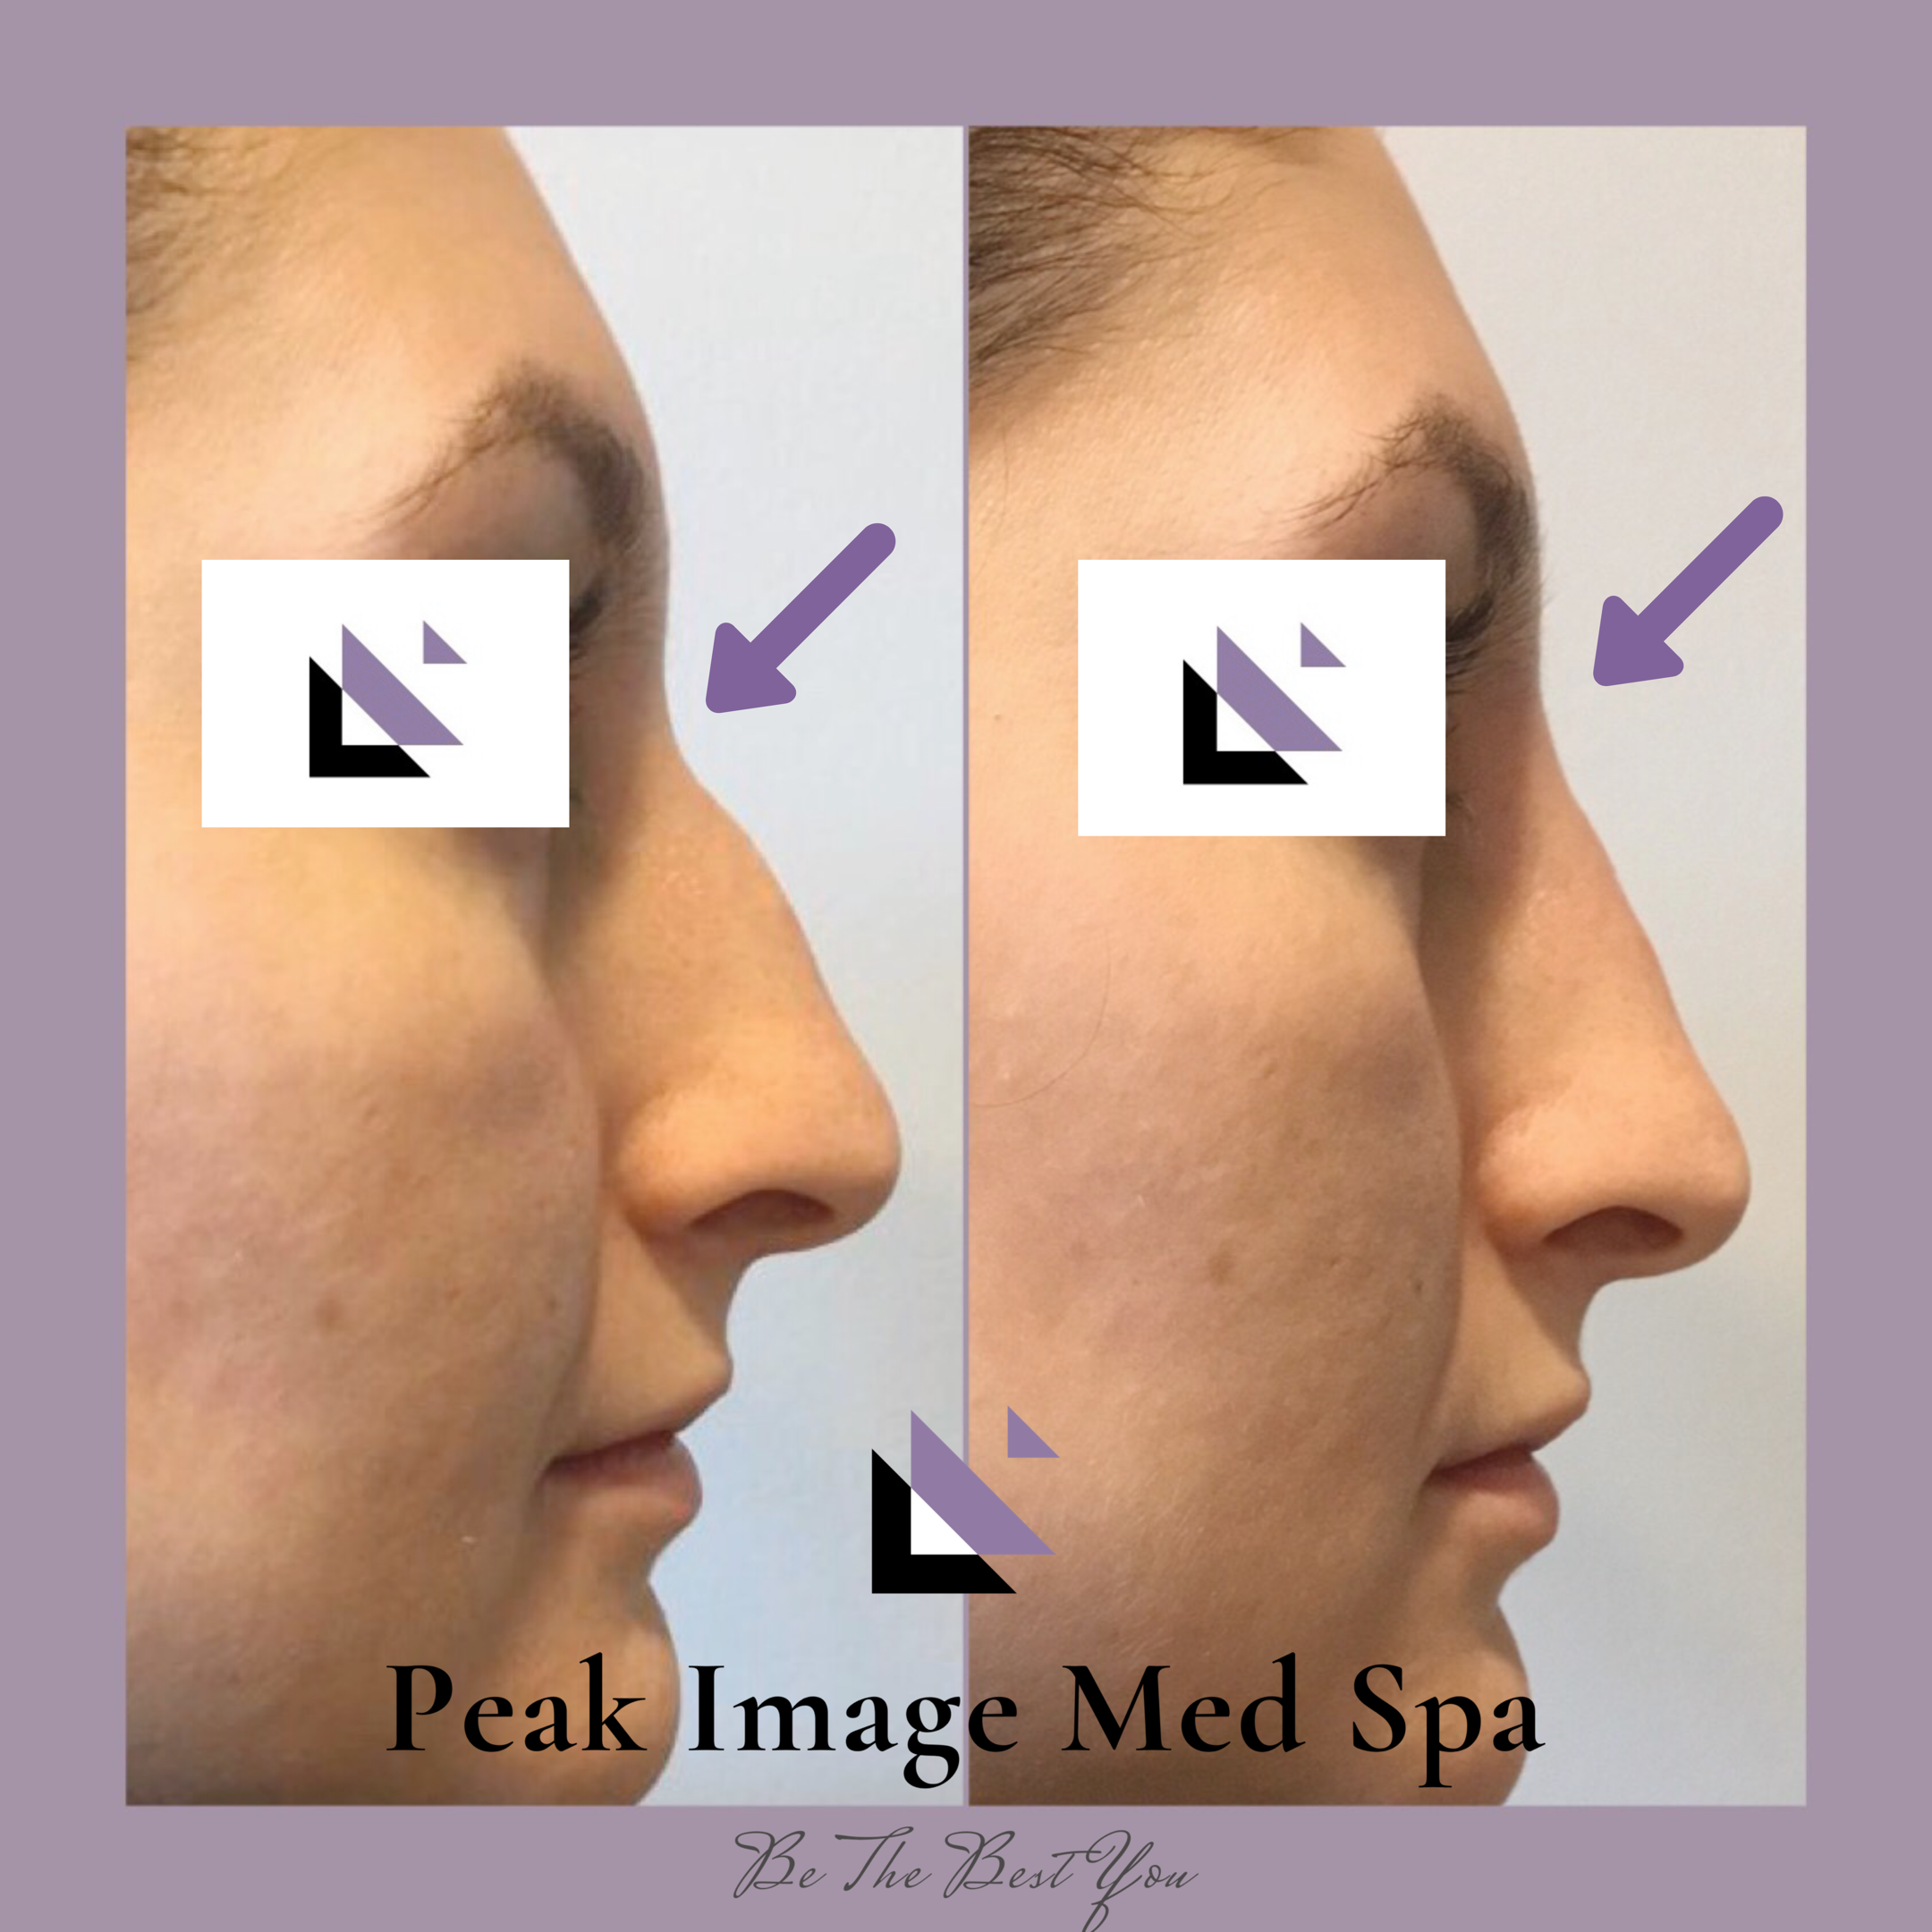 Liquid Rhinoplasty